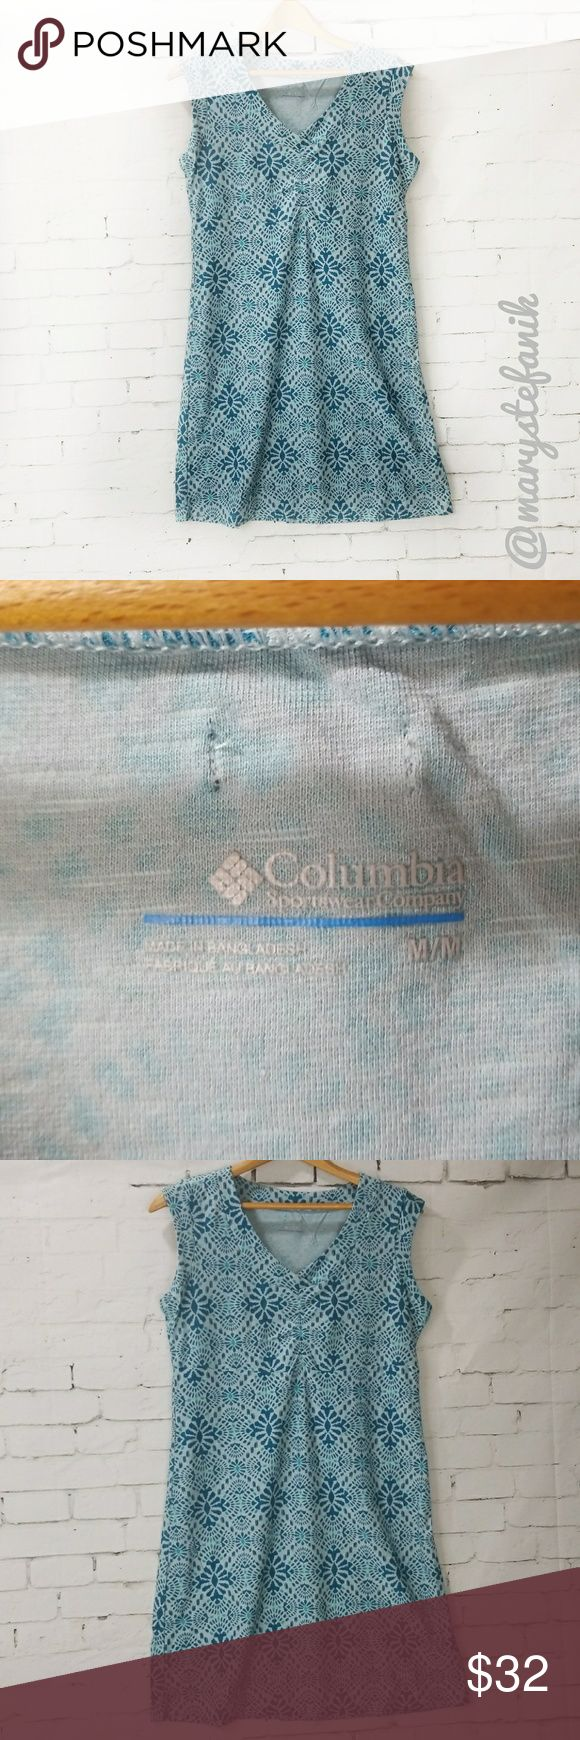 Columbia Blue Exercise Sport Dress size M Columbia Blue Exercise Sport Dress size M in excellent used condition. Fun print!  Please let me know if you have any questions. Happy Poshing! Columbia Dresses Midi